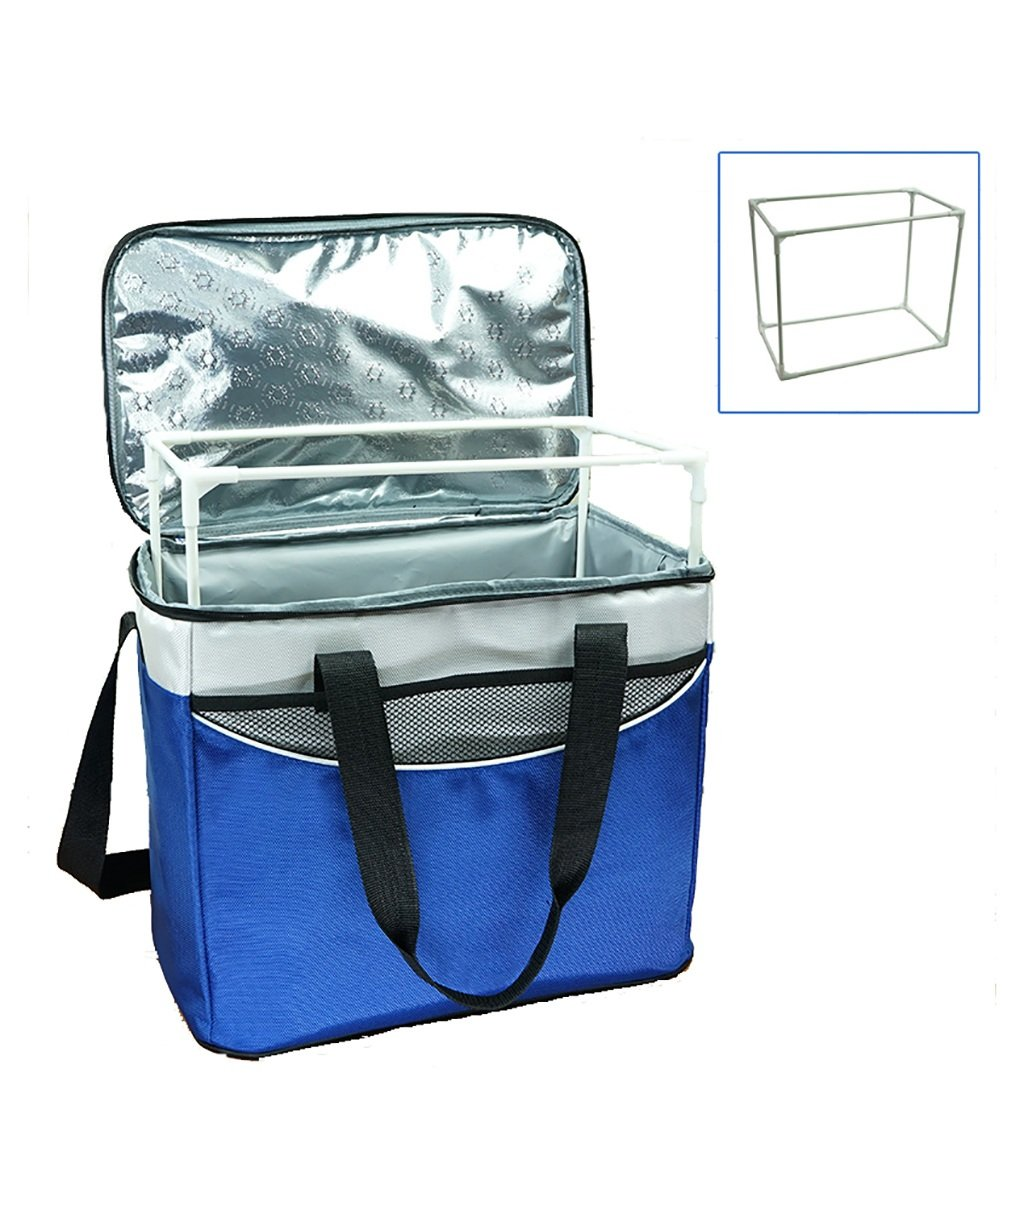 Yilian huwaibingxiang 36L Extra Large Thick Portable Shoulder Bag Insulation Bag Insulation Bag Waterproof Takeaway delivery Bag Picnic Bag (Color : C)